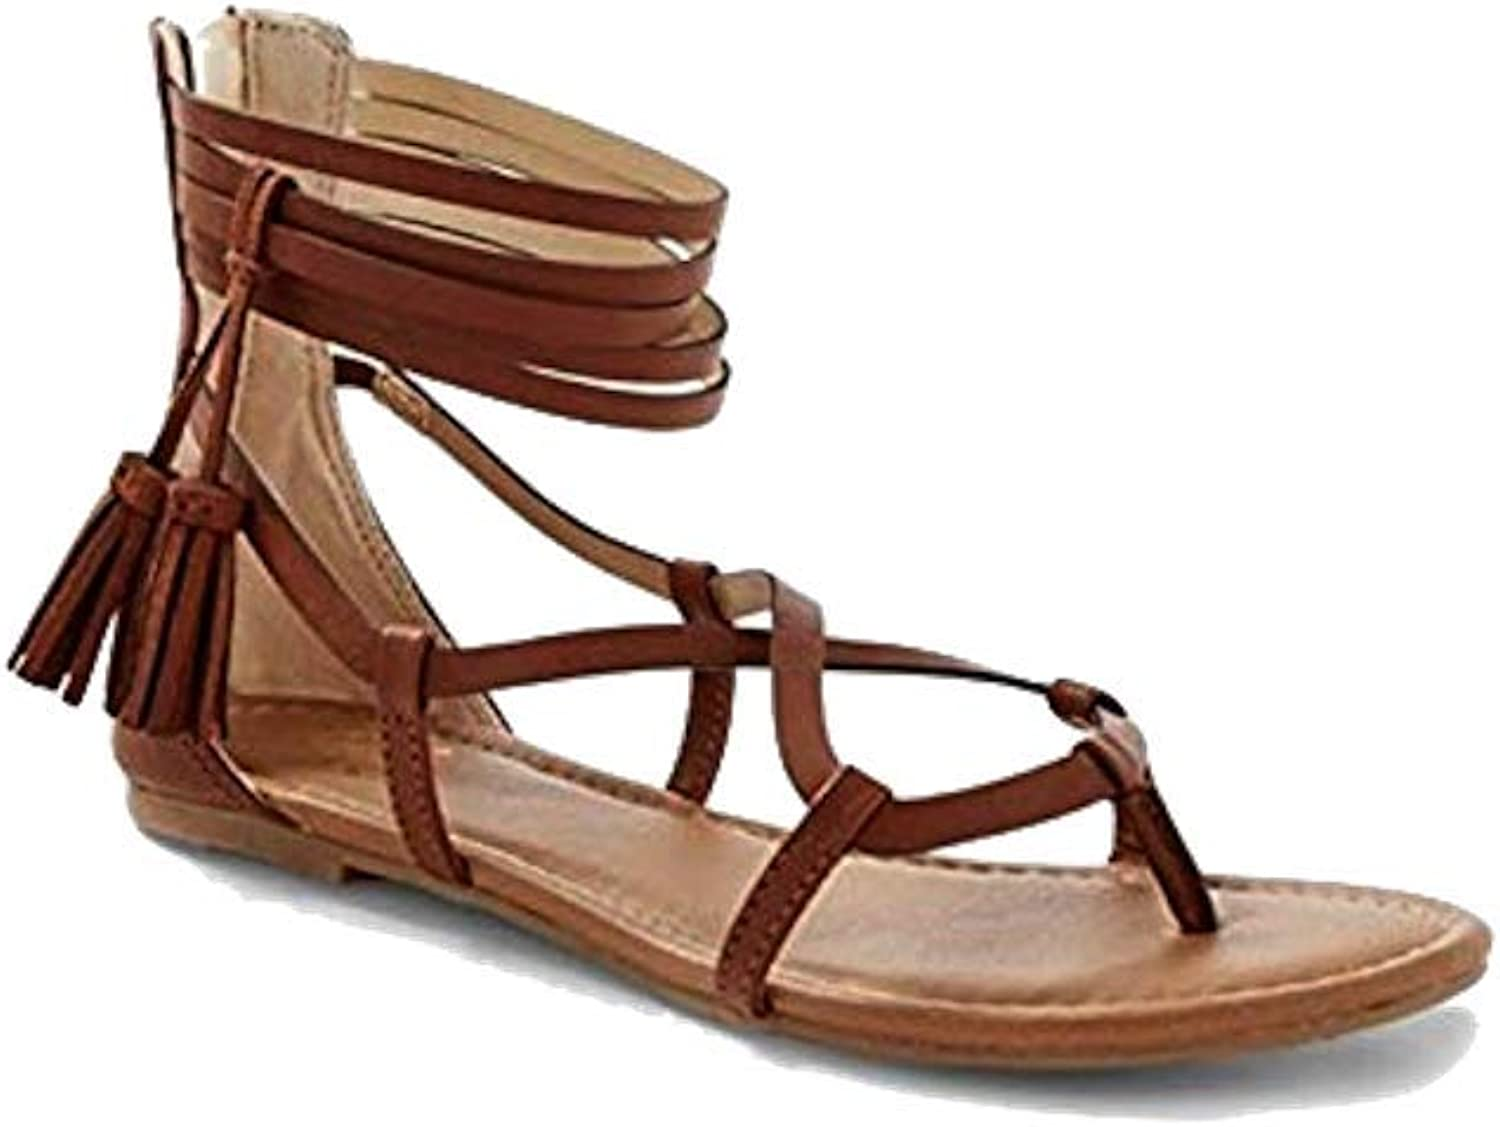 Justice Girls shoes Strappy Tassel Sandals Size 10 Brown